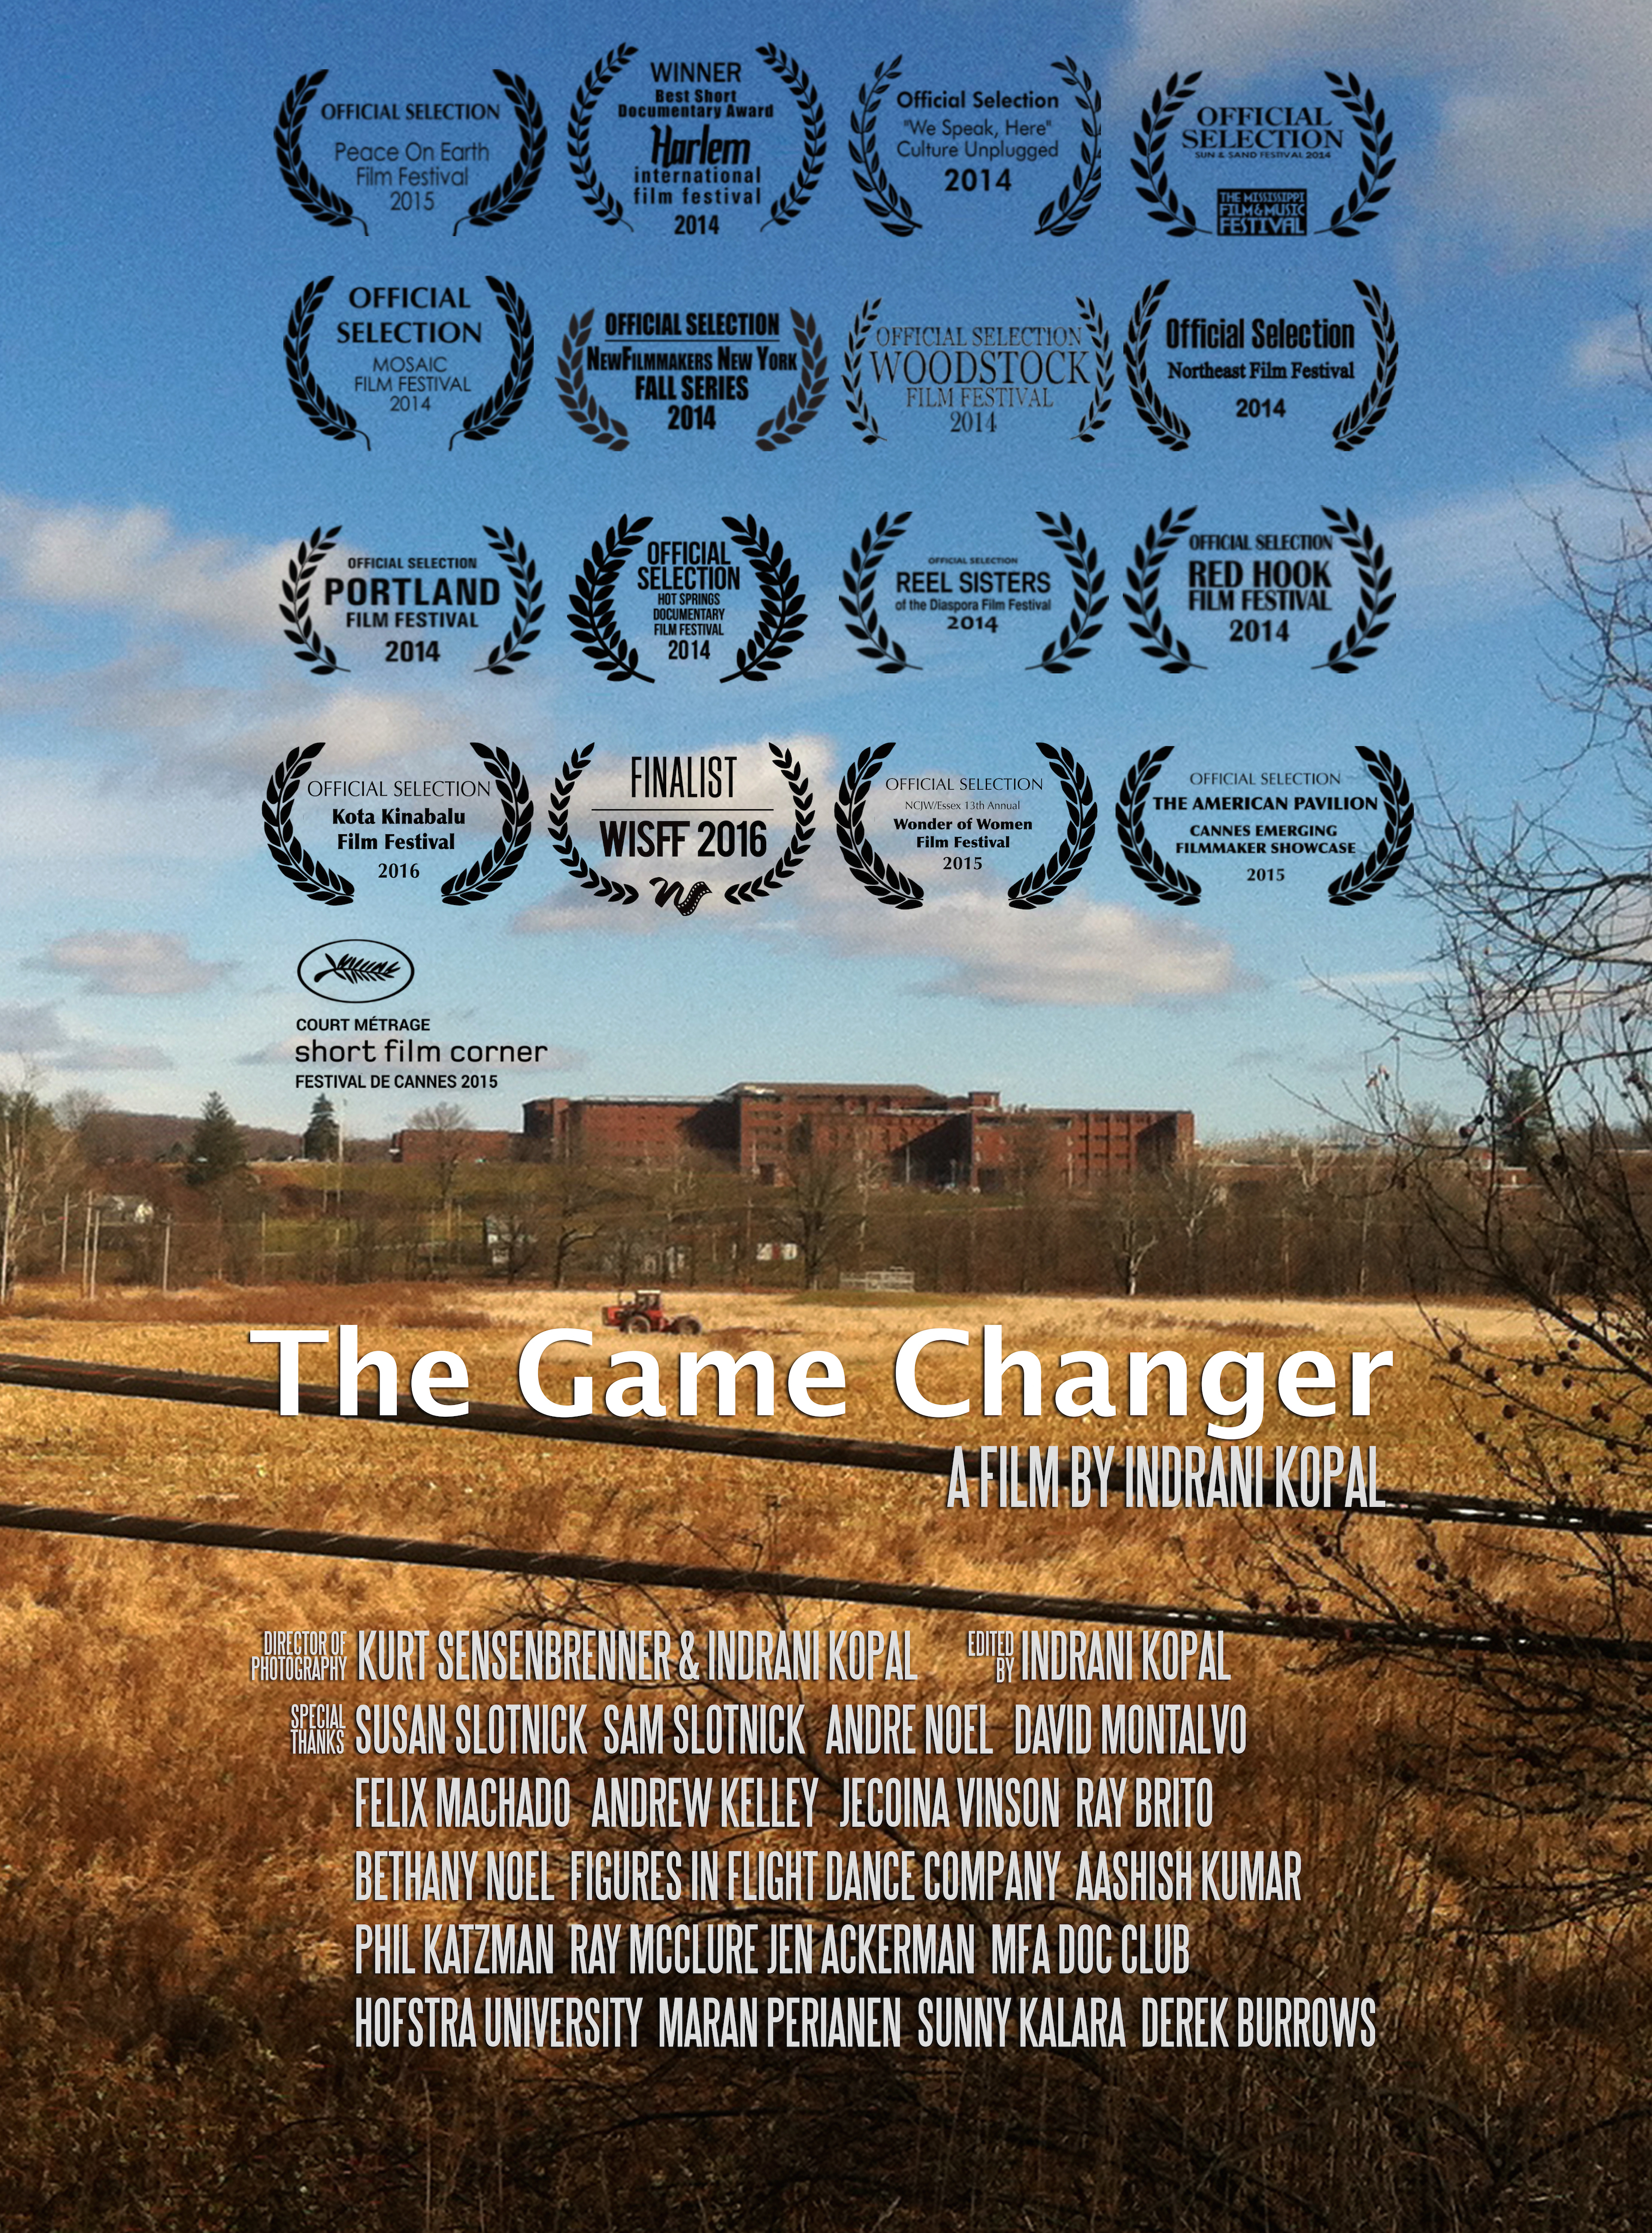 The Game Changer (US, 2014, 13-min)